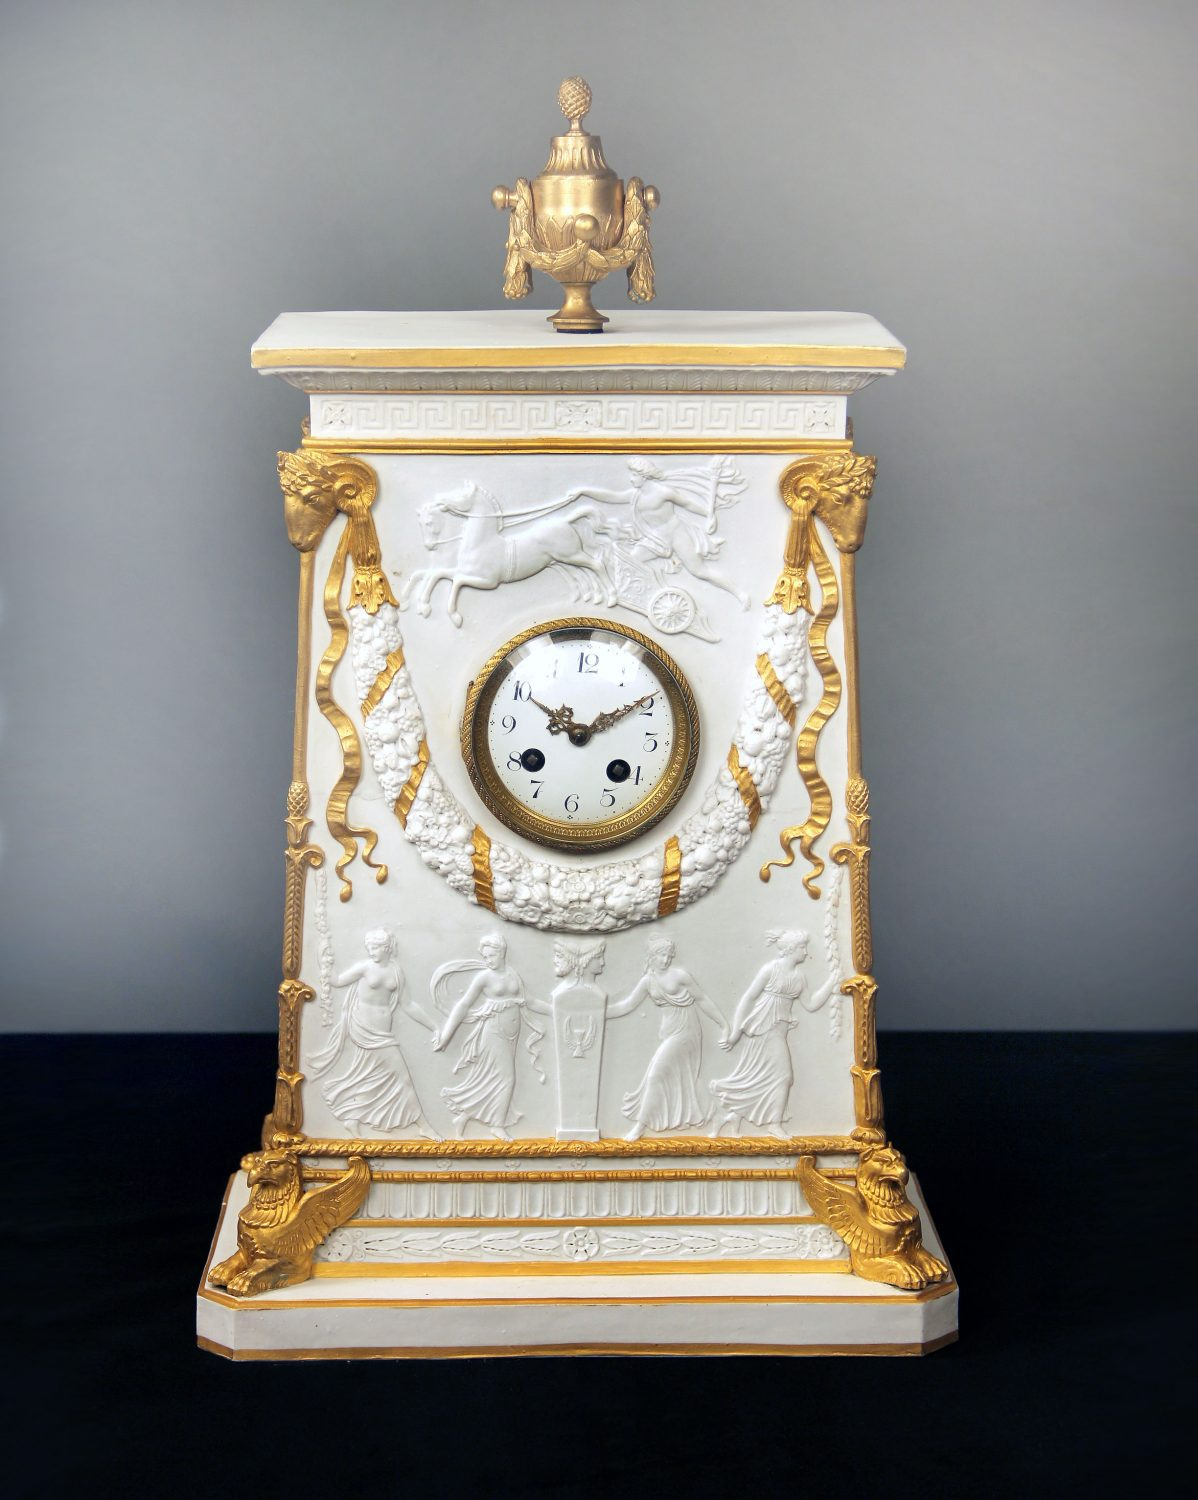 Late 19th Century Gilt Bronze Mounted Parcel-Gilt and Biscuit Porcelain Mantle Clock with Apollo